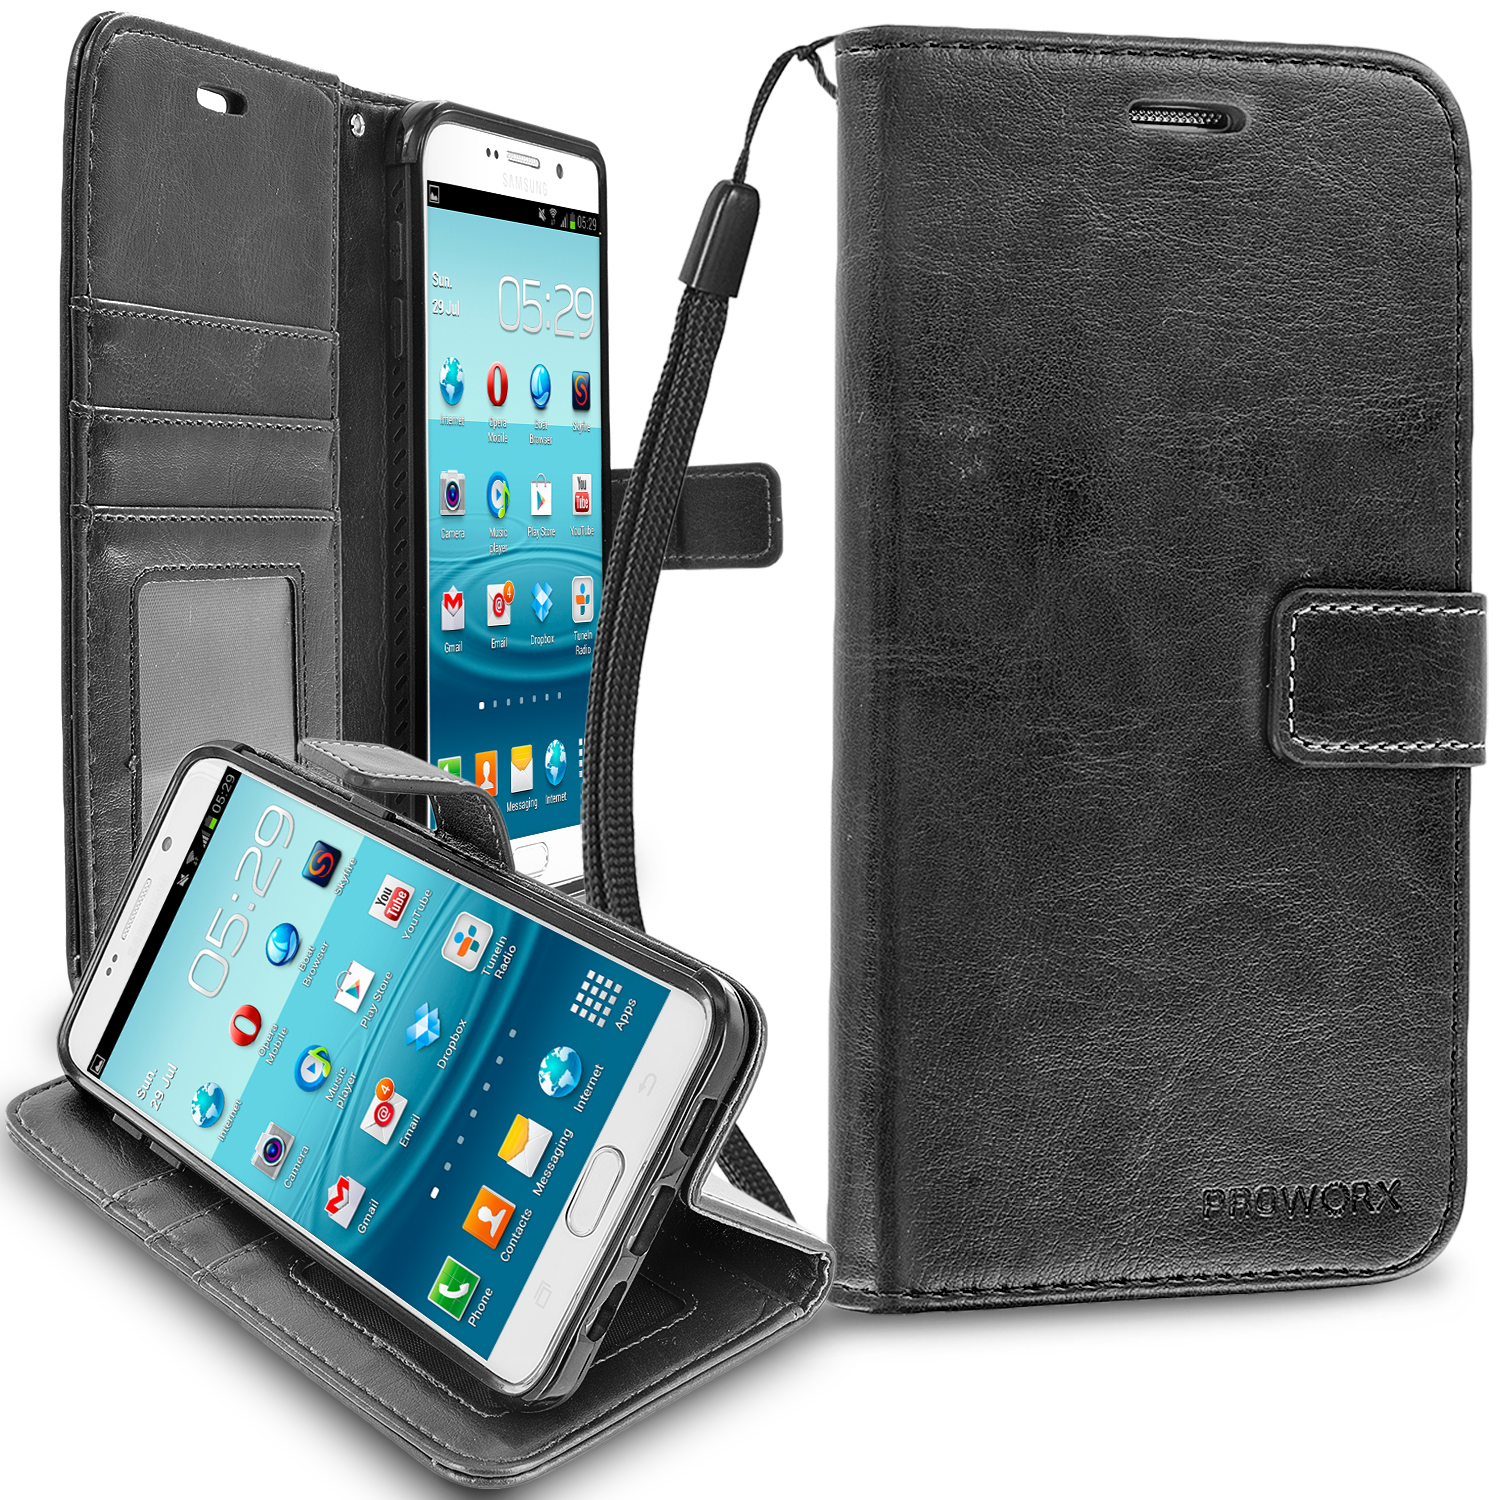 Samsung Galaxy S6 Edge Black ProWorx Wallet Case Luxury PU Leather Case Cover With Card Slots & Stand